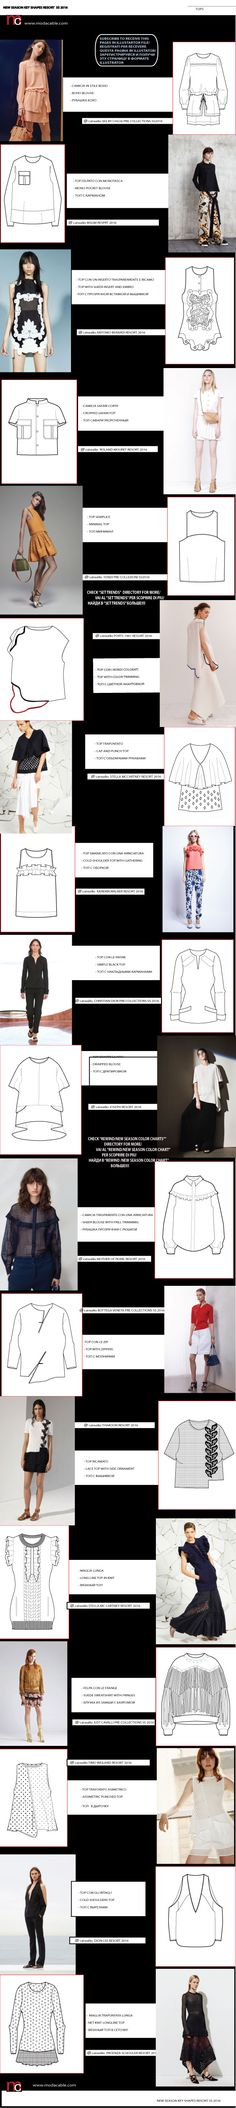 How the clothes look like as designed on paper and when sewn and worn. Flat Drawings, Flat Sketches, Technical Drawings, Clothing Patterns, Dress Patterns, Sewing Patterns, Fashion Flats, Diy Fashion, Fashion Design